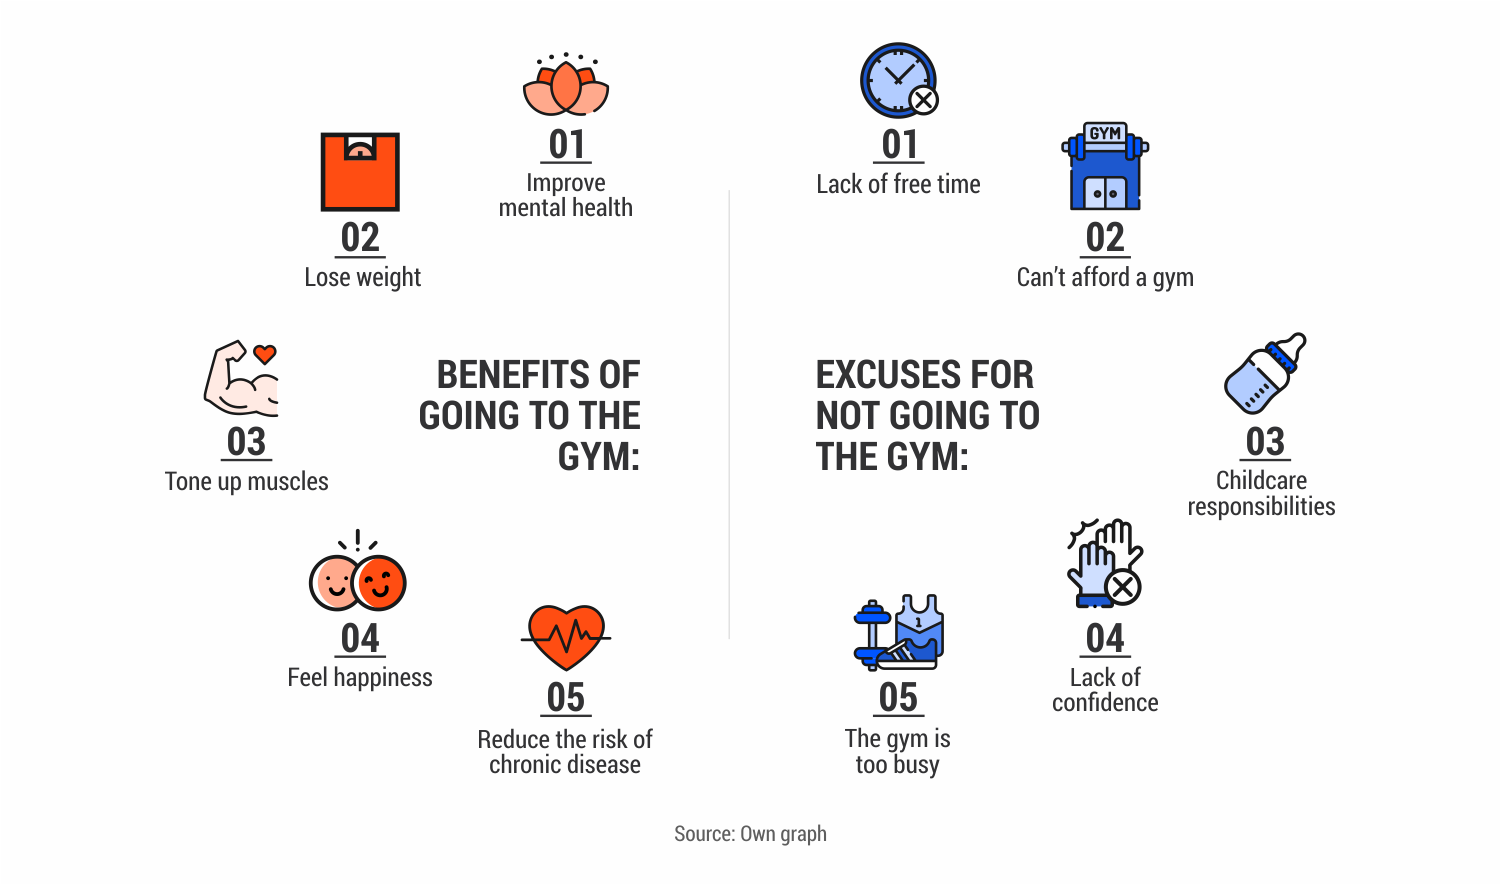 Going-to-the-gym--benefits-and-excuses-